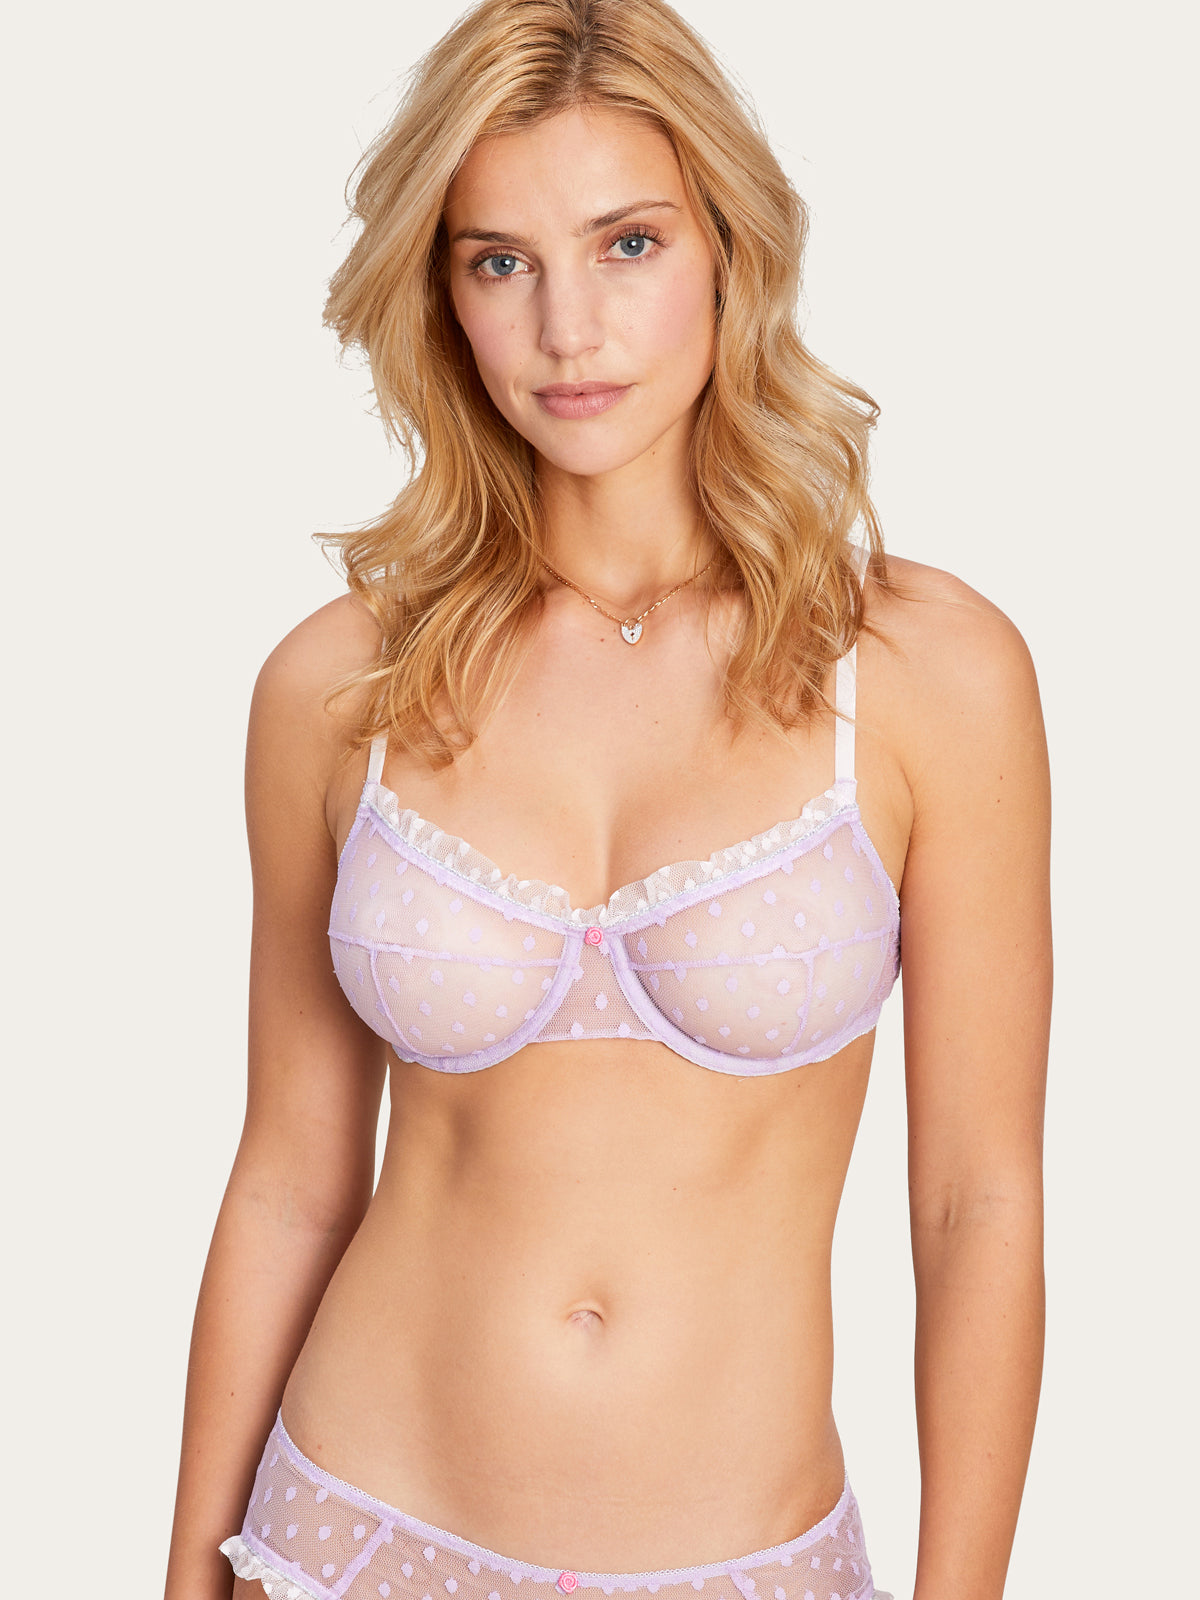 Atlanta Bra in Cupcake By Morgan Lane